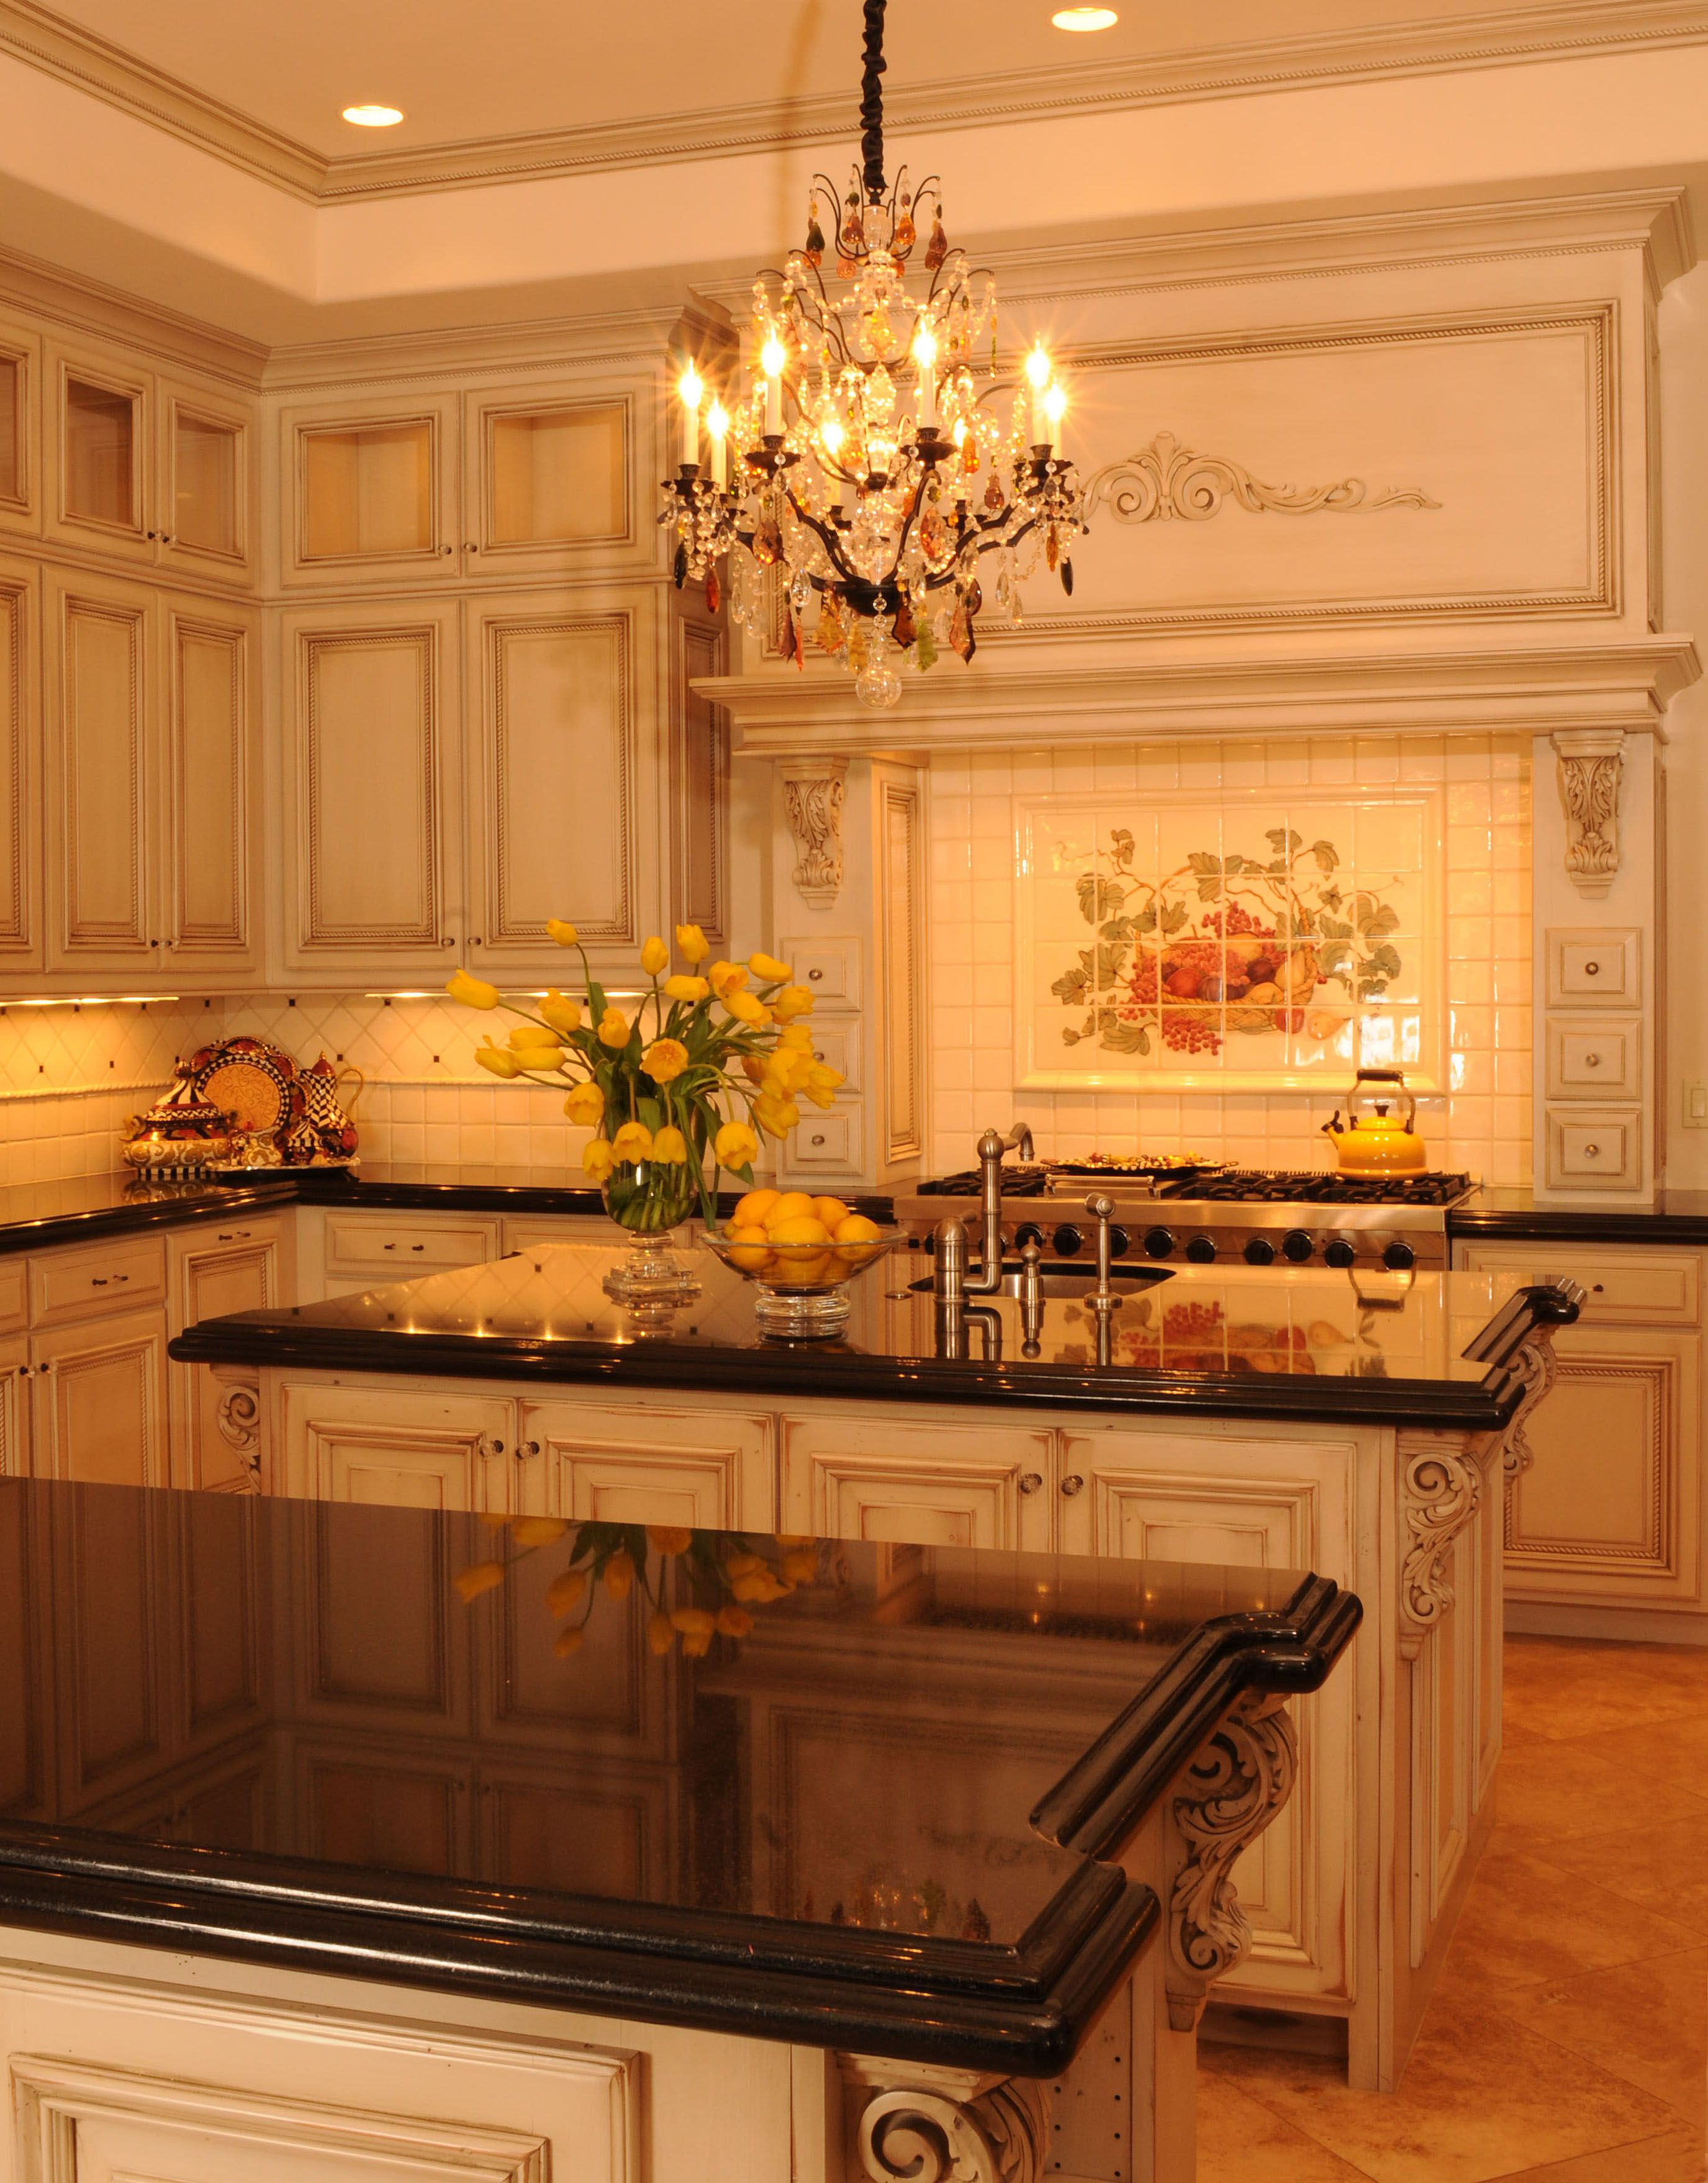 Pin By Gary Wyant On Calvis Wyant Luxury Homes Country Kitchen Cabinets French Country Kitchen Cabinets French Country Kitchens